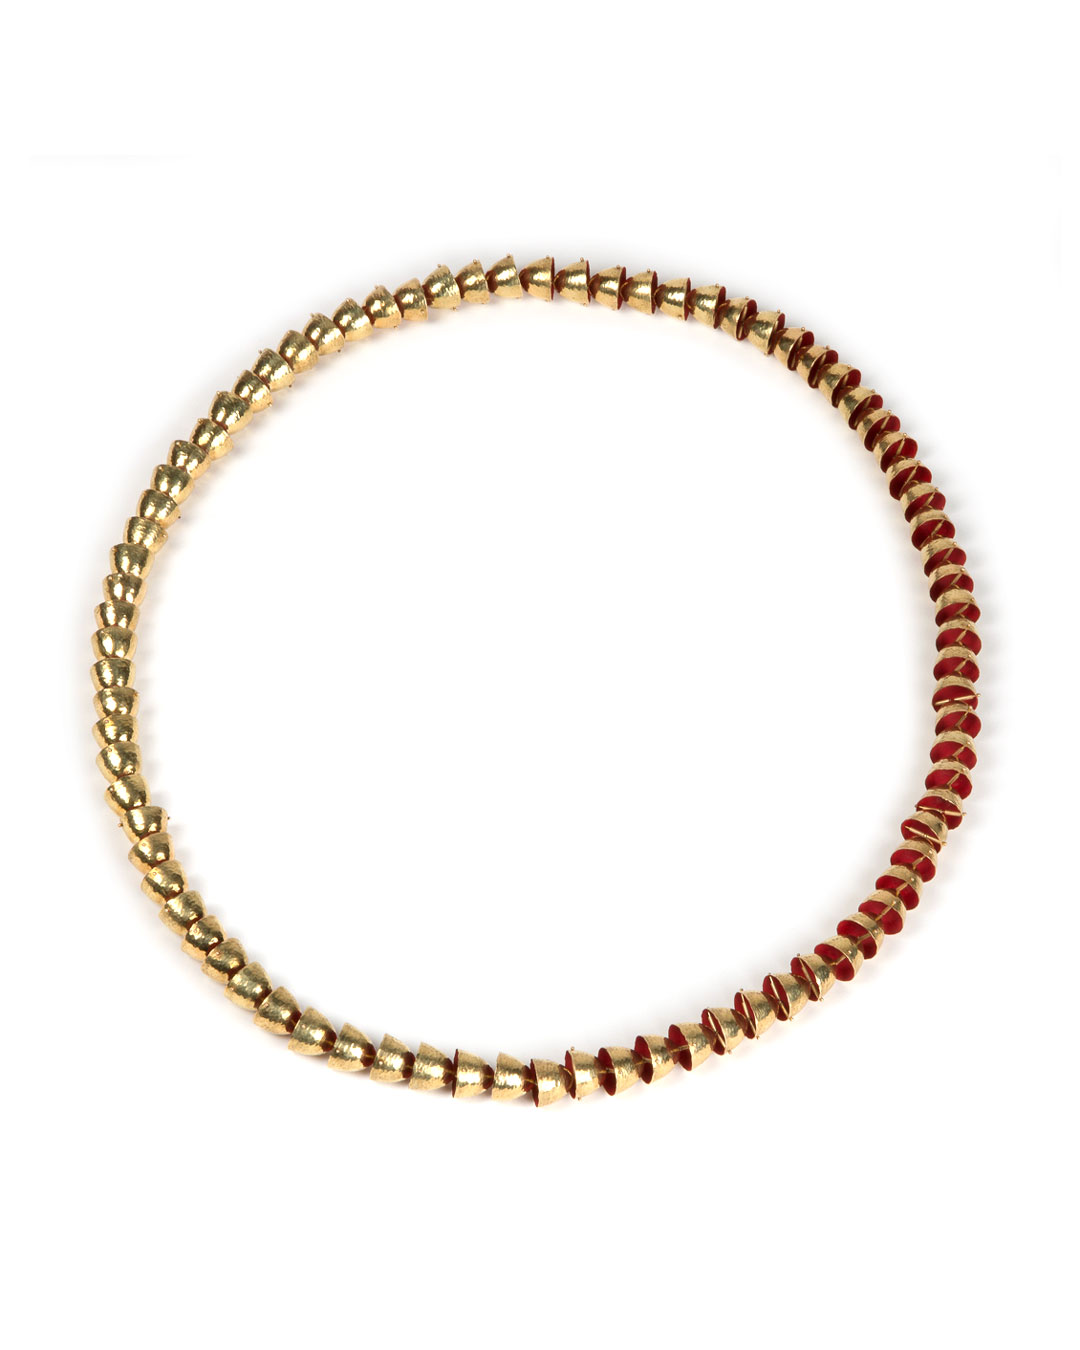 Piergiuliano Reveane, untitled, 2018, necklace; gold, enamel, ø 895 x 14 mm, price on request (image 3/3)